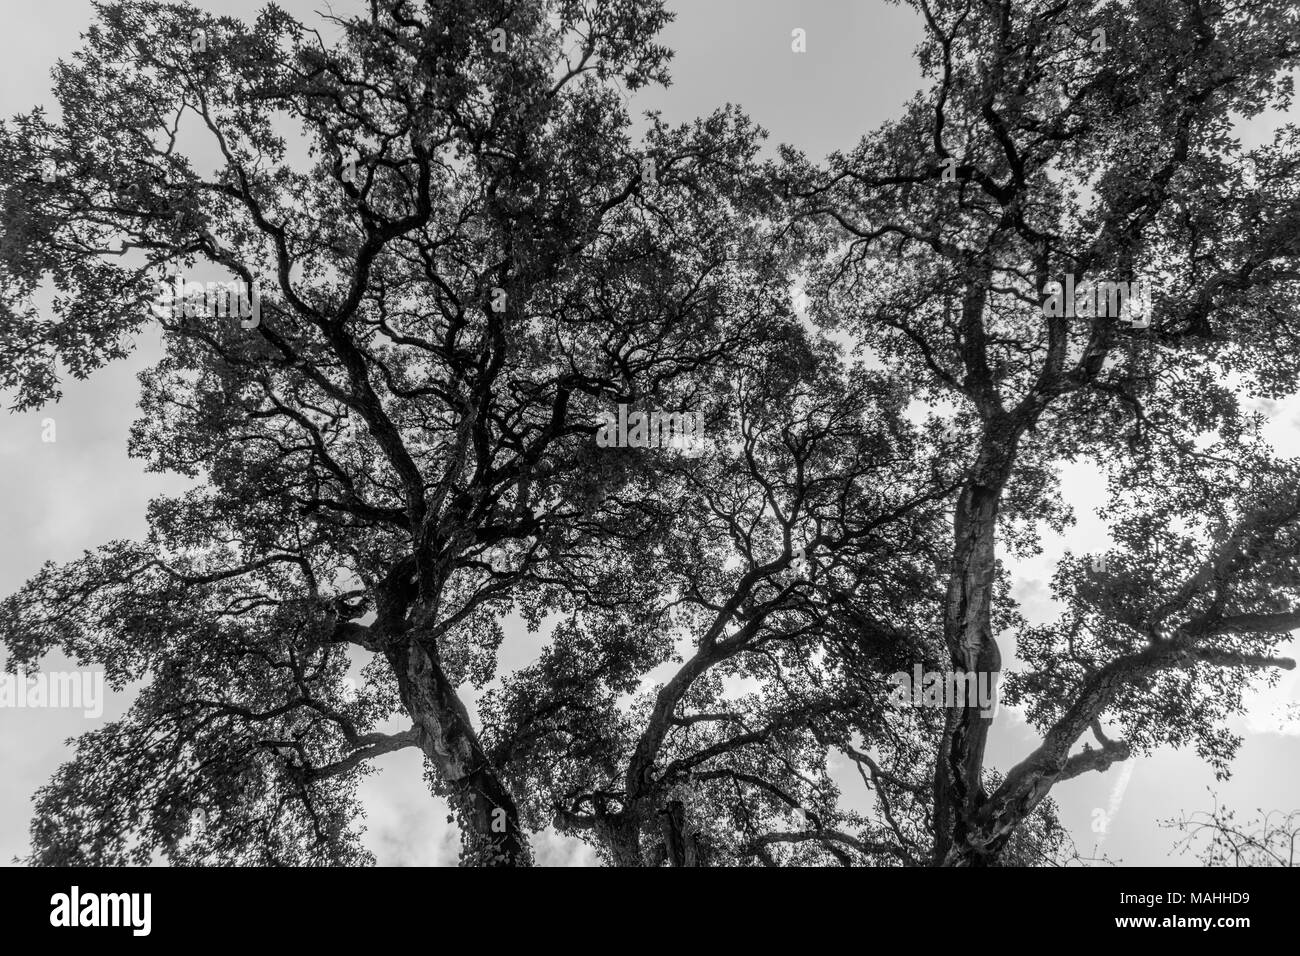 Tree branches against a cloudy sky. black White. - Stock Image